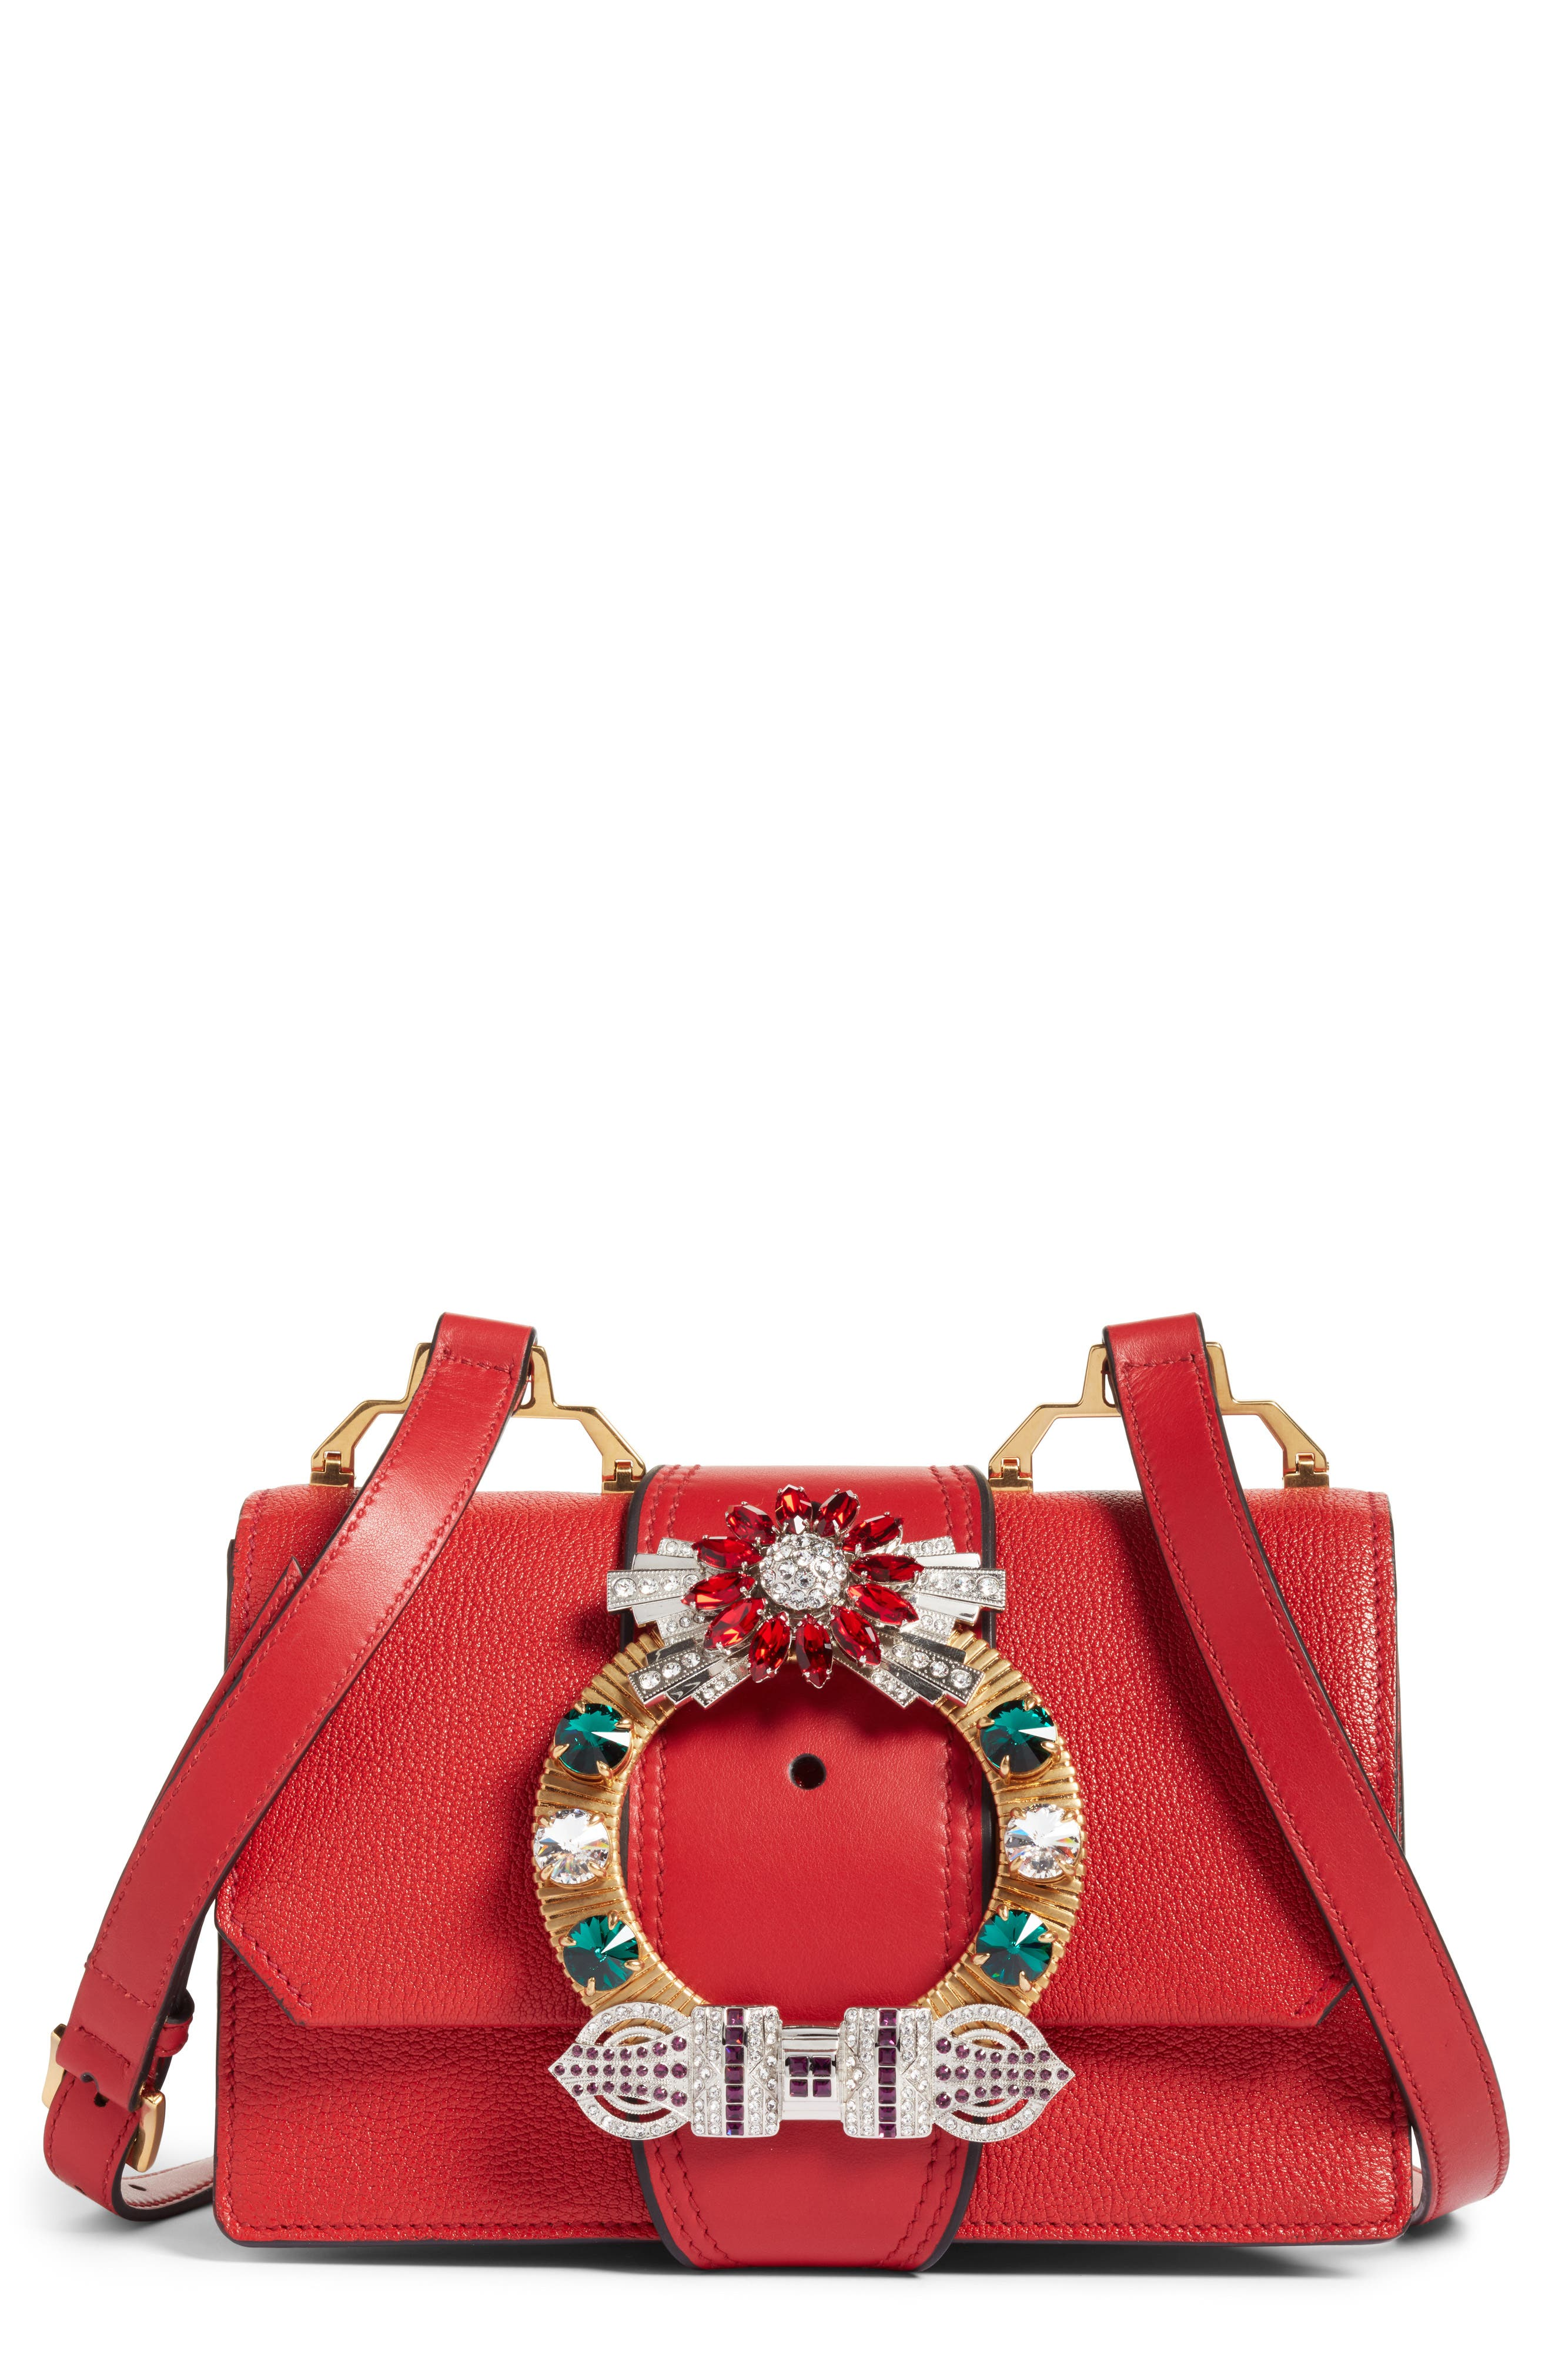 Madras Crystal Embellished Leather Shoulder Bag,                             Main thumbnail 1, color,                             FUOCO